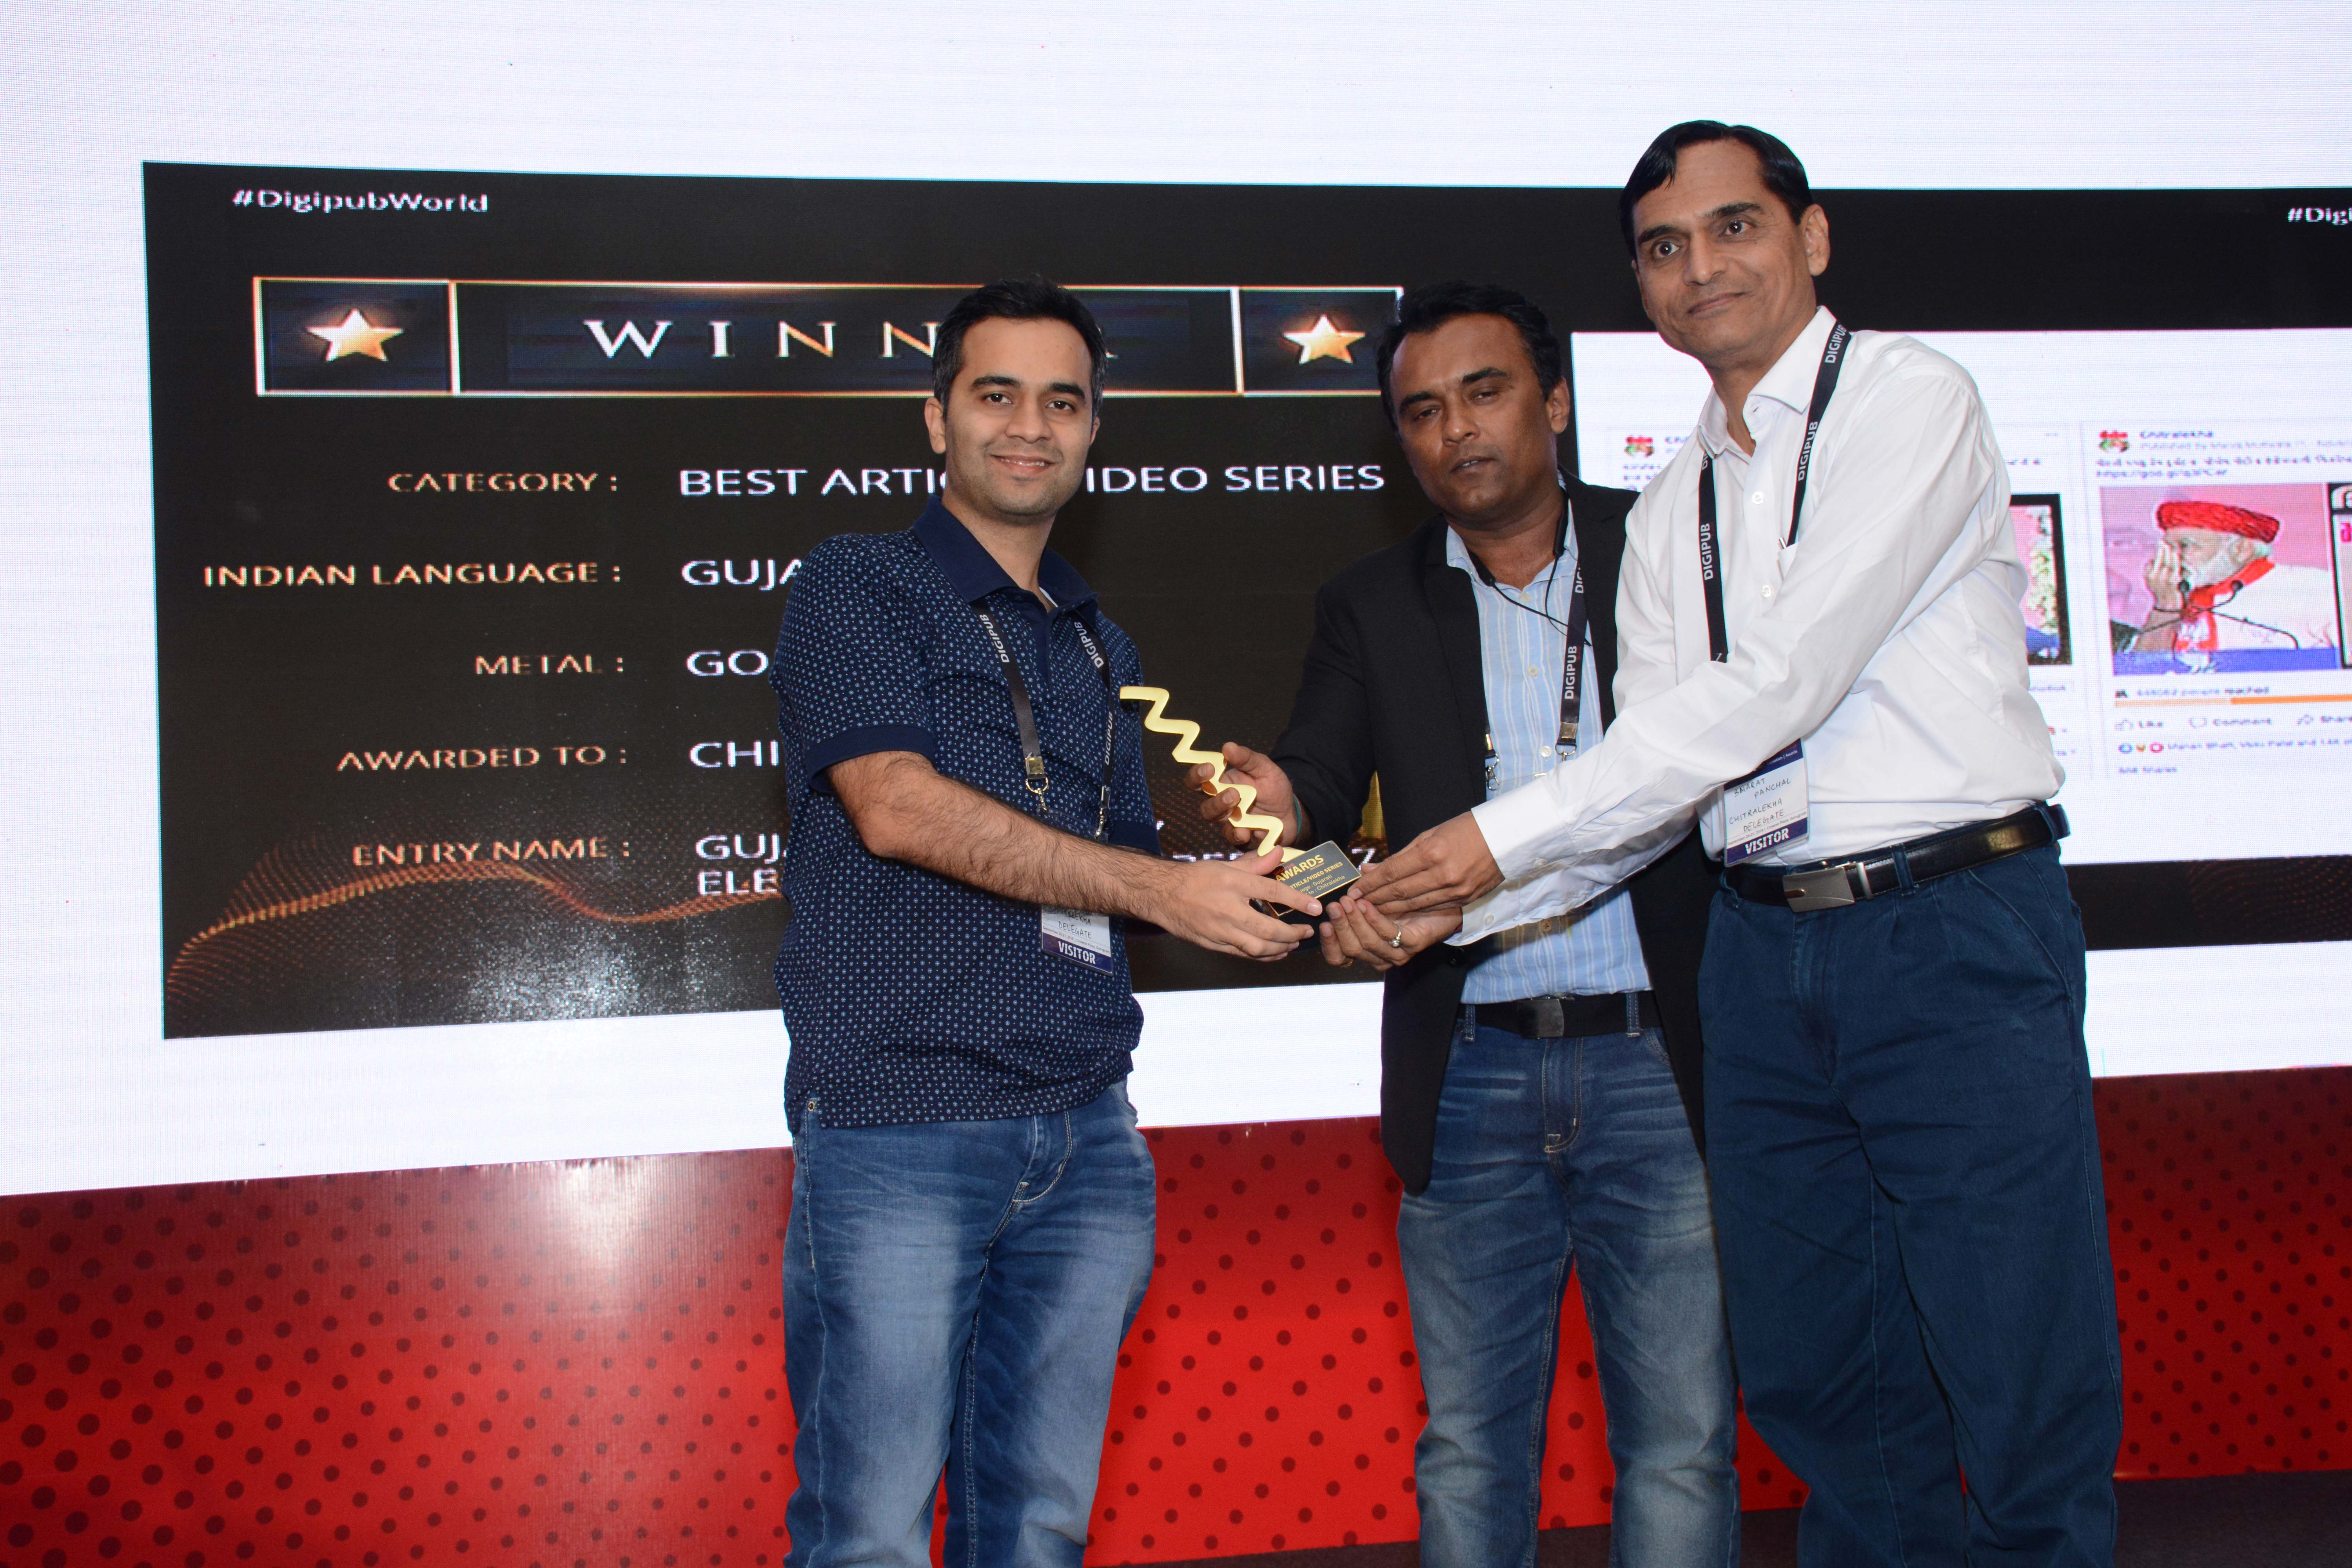 Best Article Video Series Indian Language Gold Award to Chitralekha